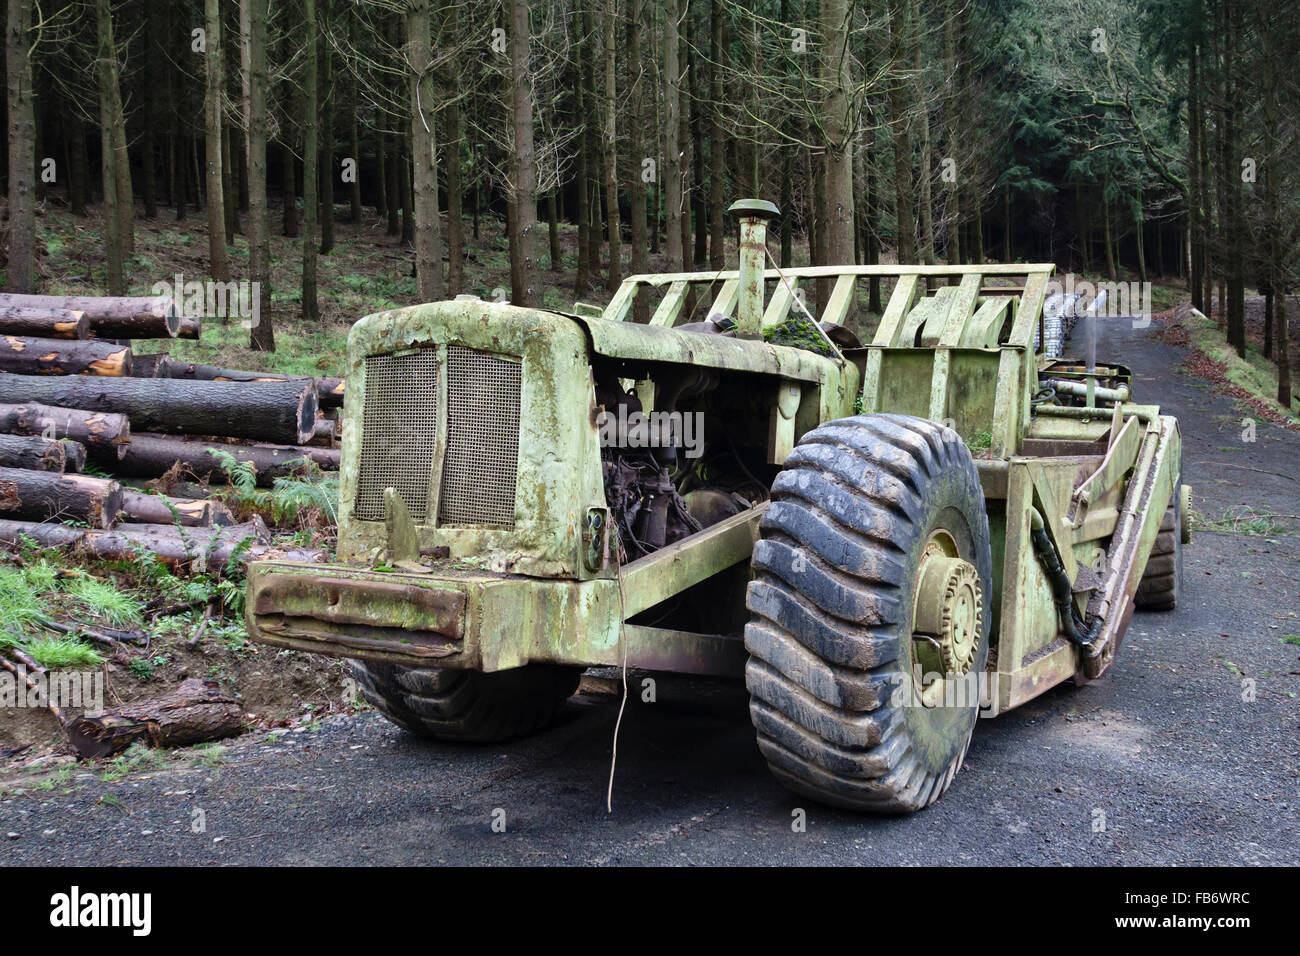 Herefordshire, UK  An old Terex TS-14b grader or scraper